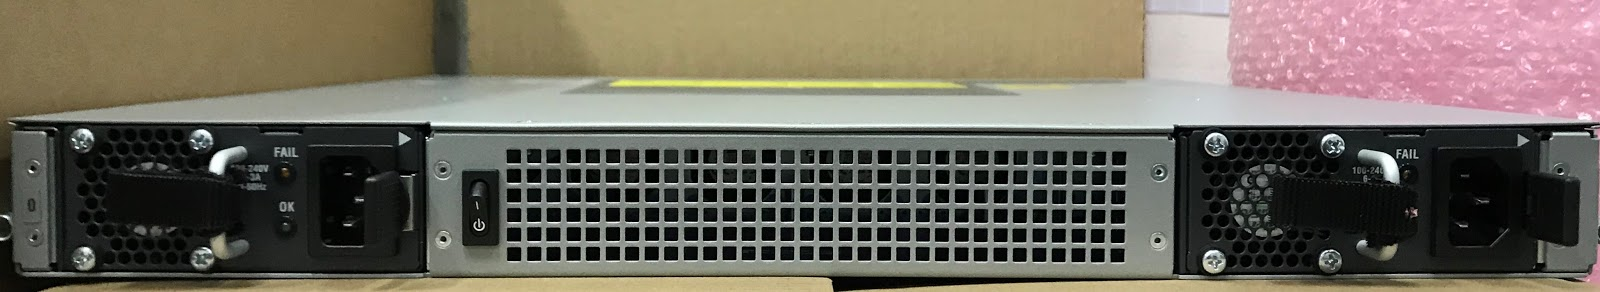 My Network Lab: Upgrading a Cisco ASR 1001-X Router and show hw